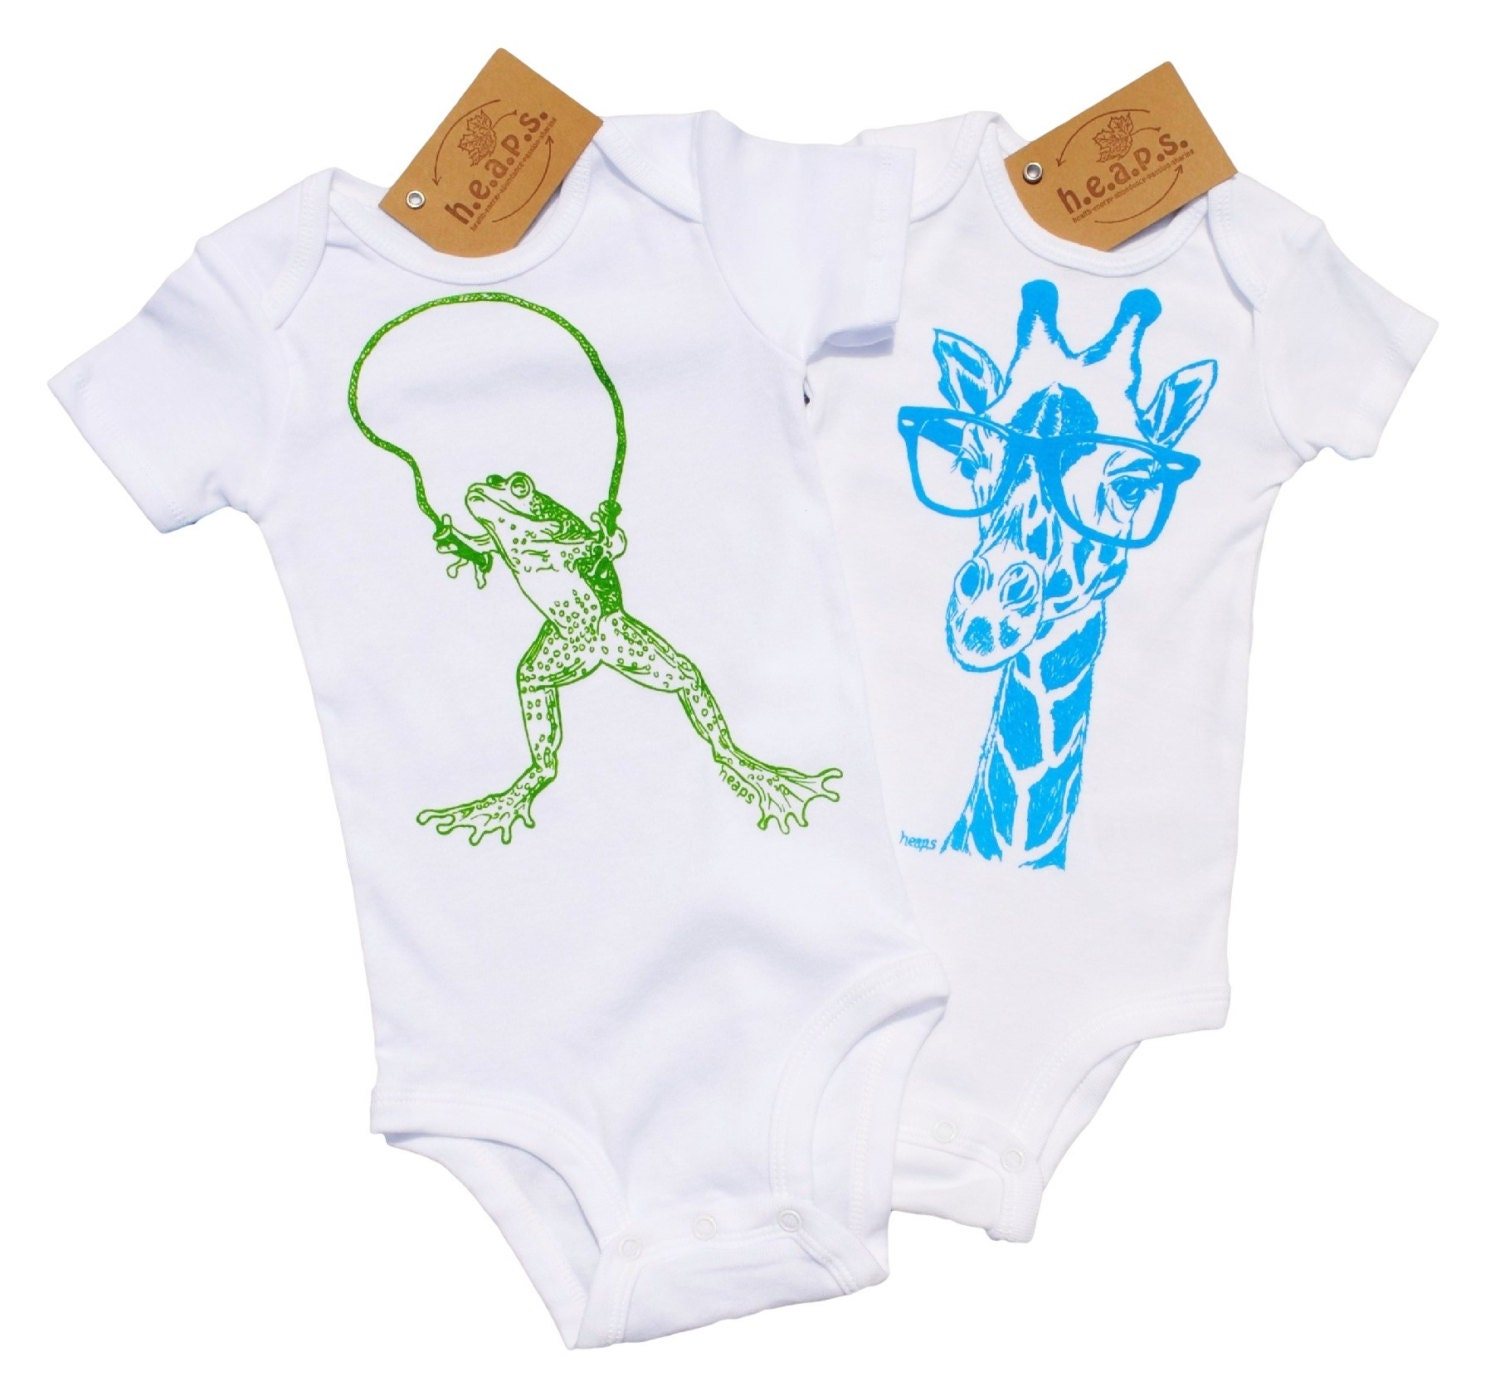 Trendy Baby Boy Clothes - Hipster Baby Clothes - Baby Bodysuits Set ...